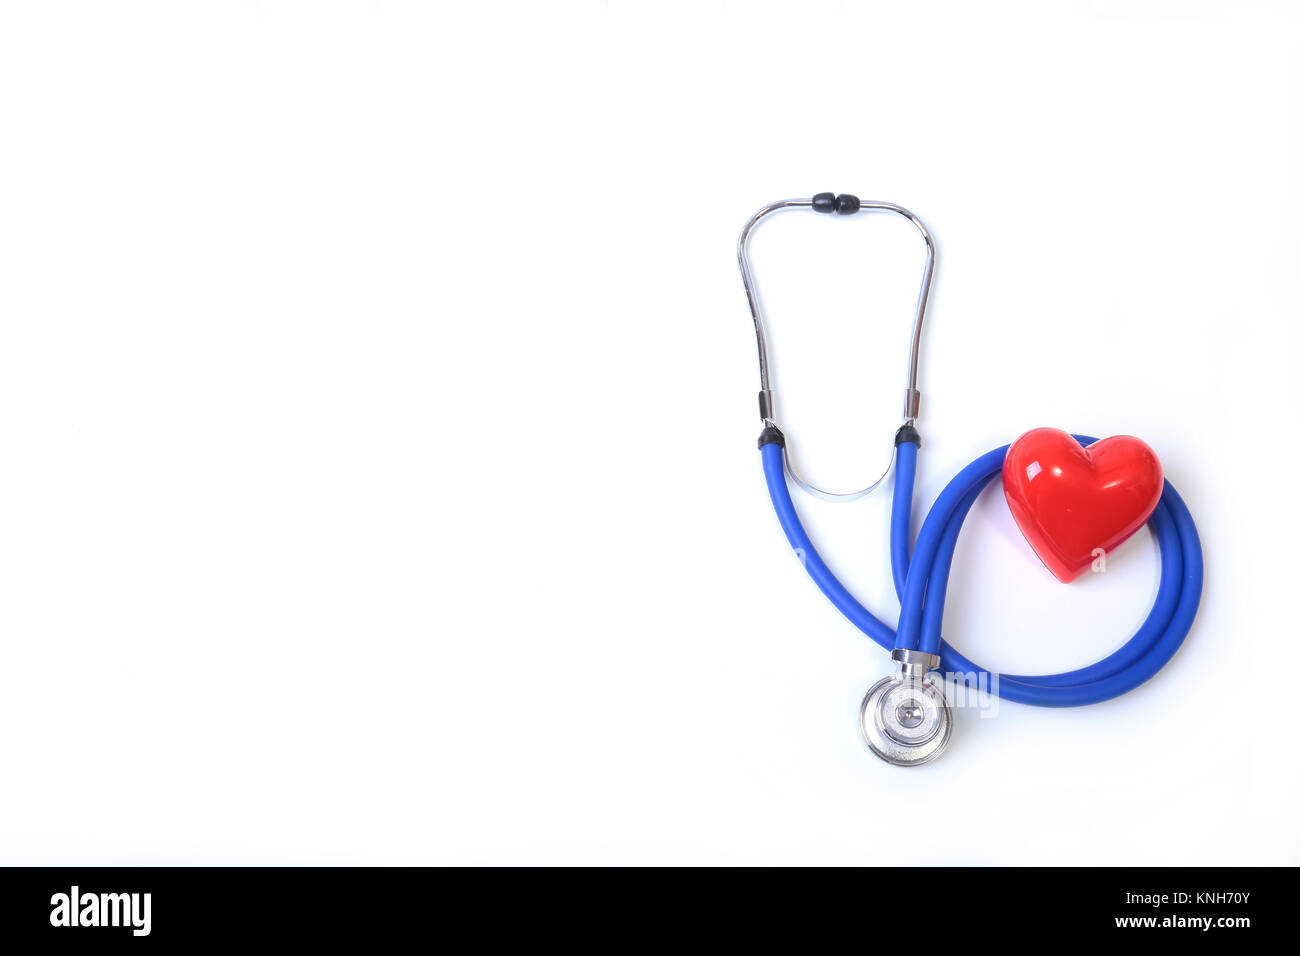 Heart with a medical stethoscope, isolated on wooden background - Stock Image